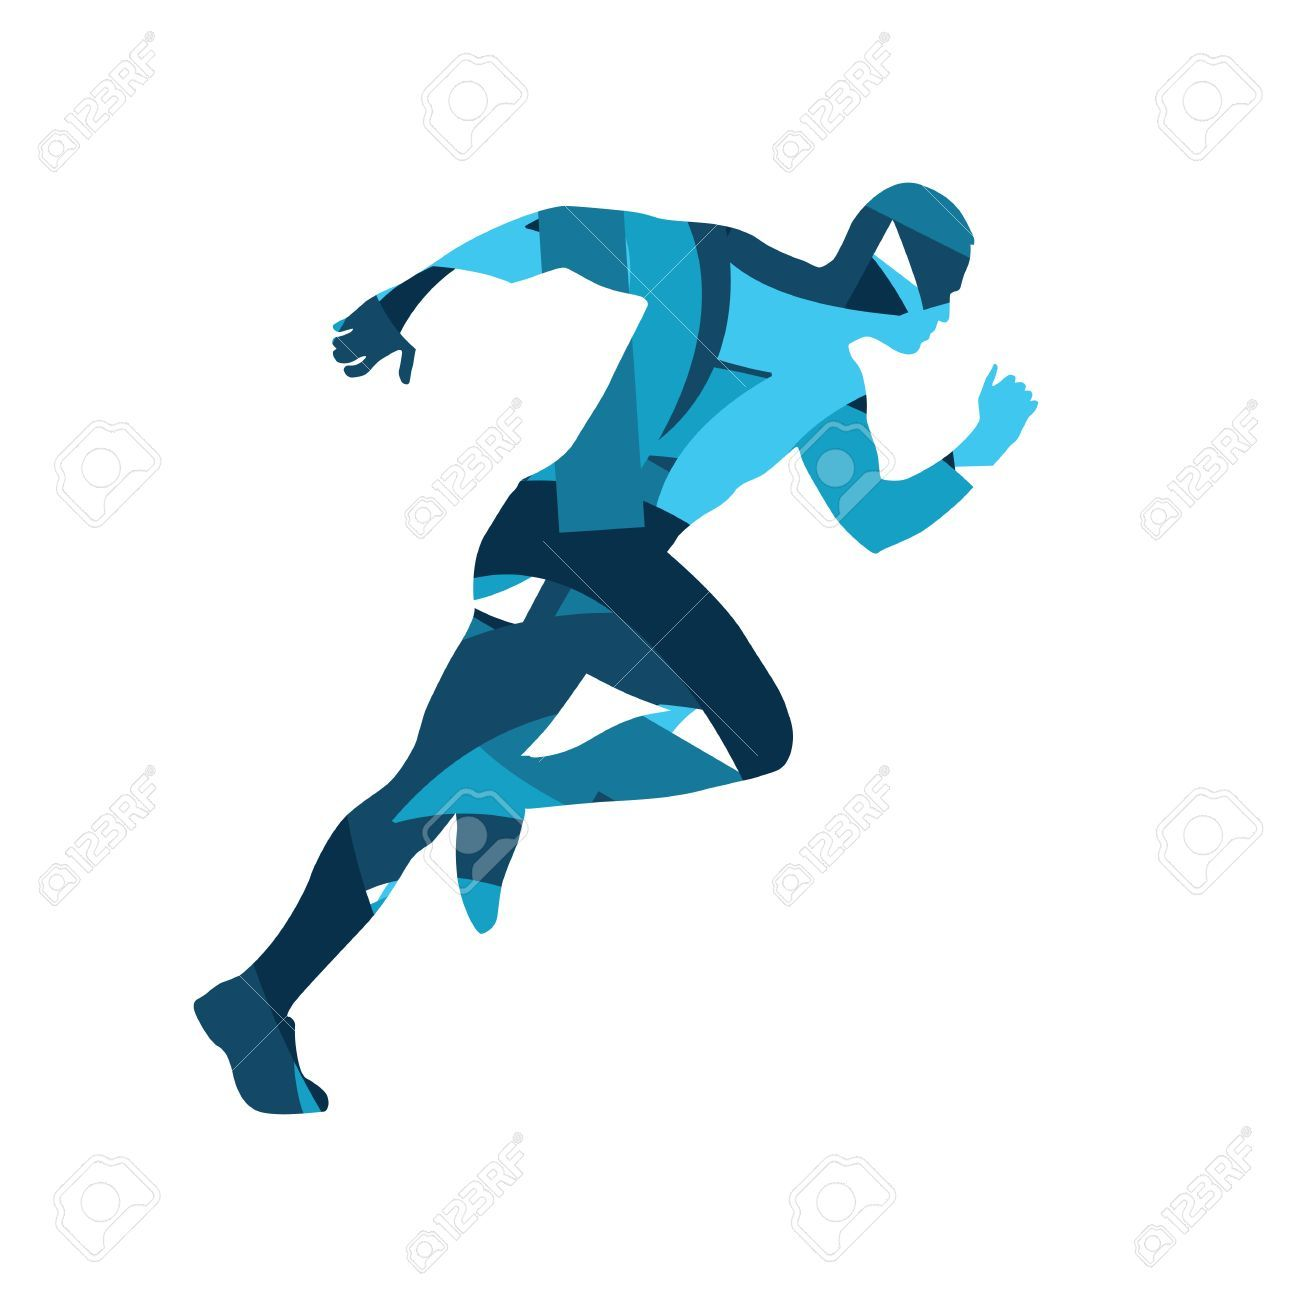 Athlete clipart approach. Abstract blue vector runner